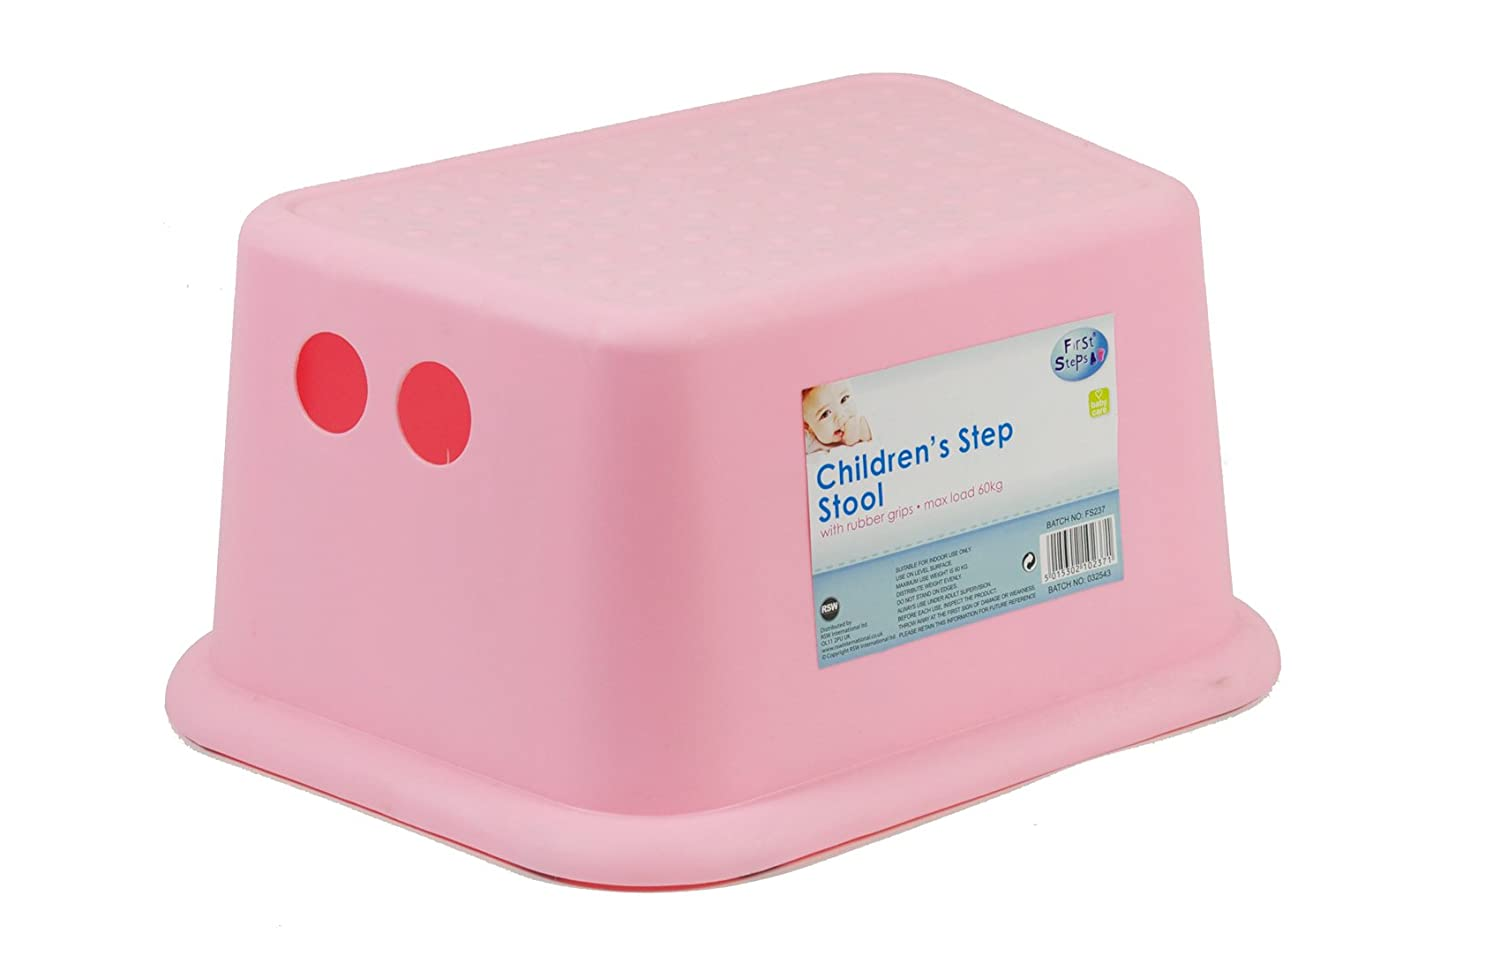 Kids Toddler Step Stool With Rubber Grips Sink Basin Potty Training   PINK:  Amazon.co.uk: Baby